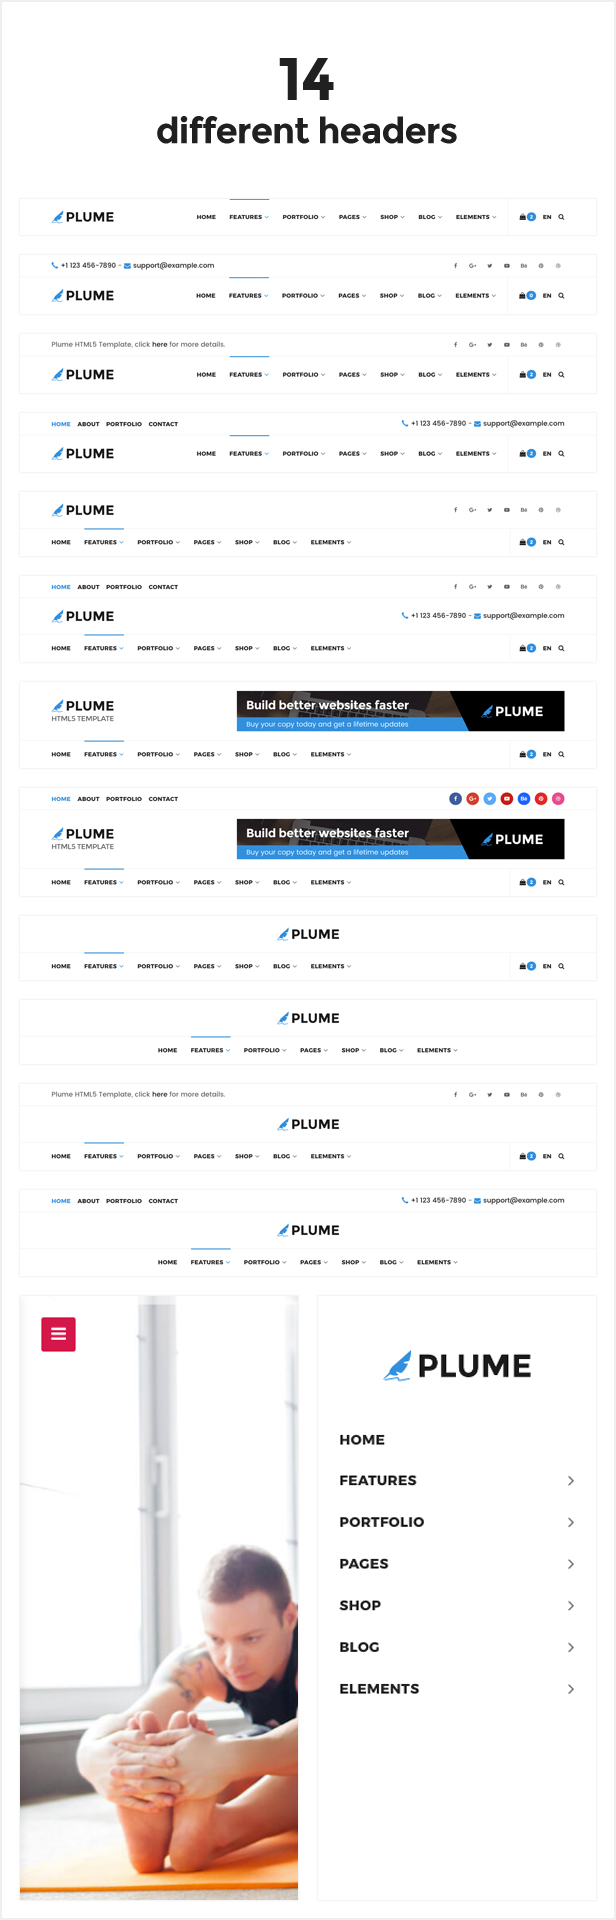 006 - PLUME HTML5 Multi-Purpose Template